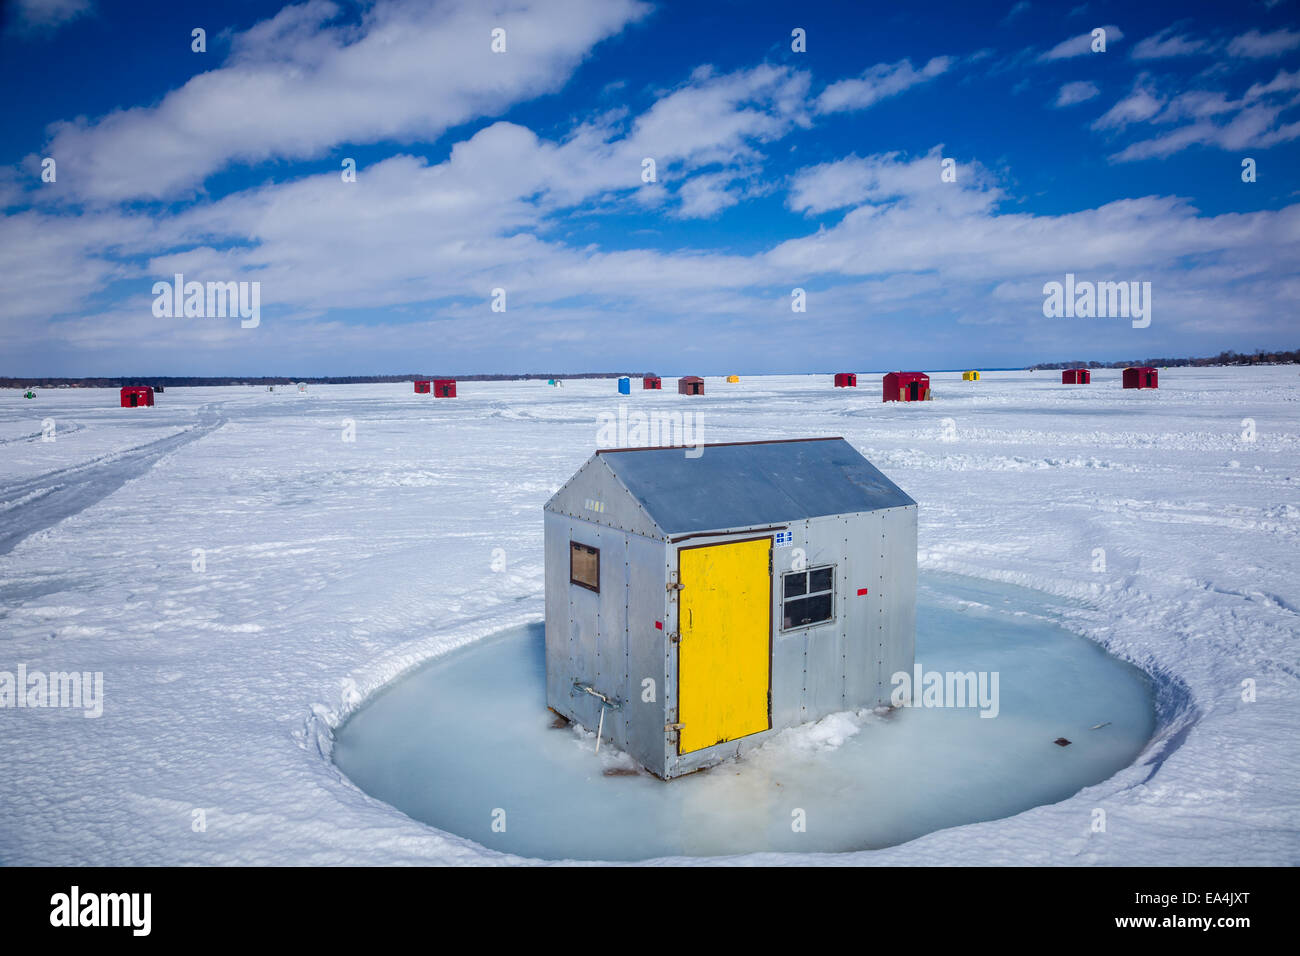 Lake Simcoe Ice Fishing Images